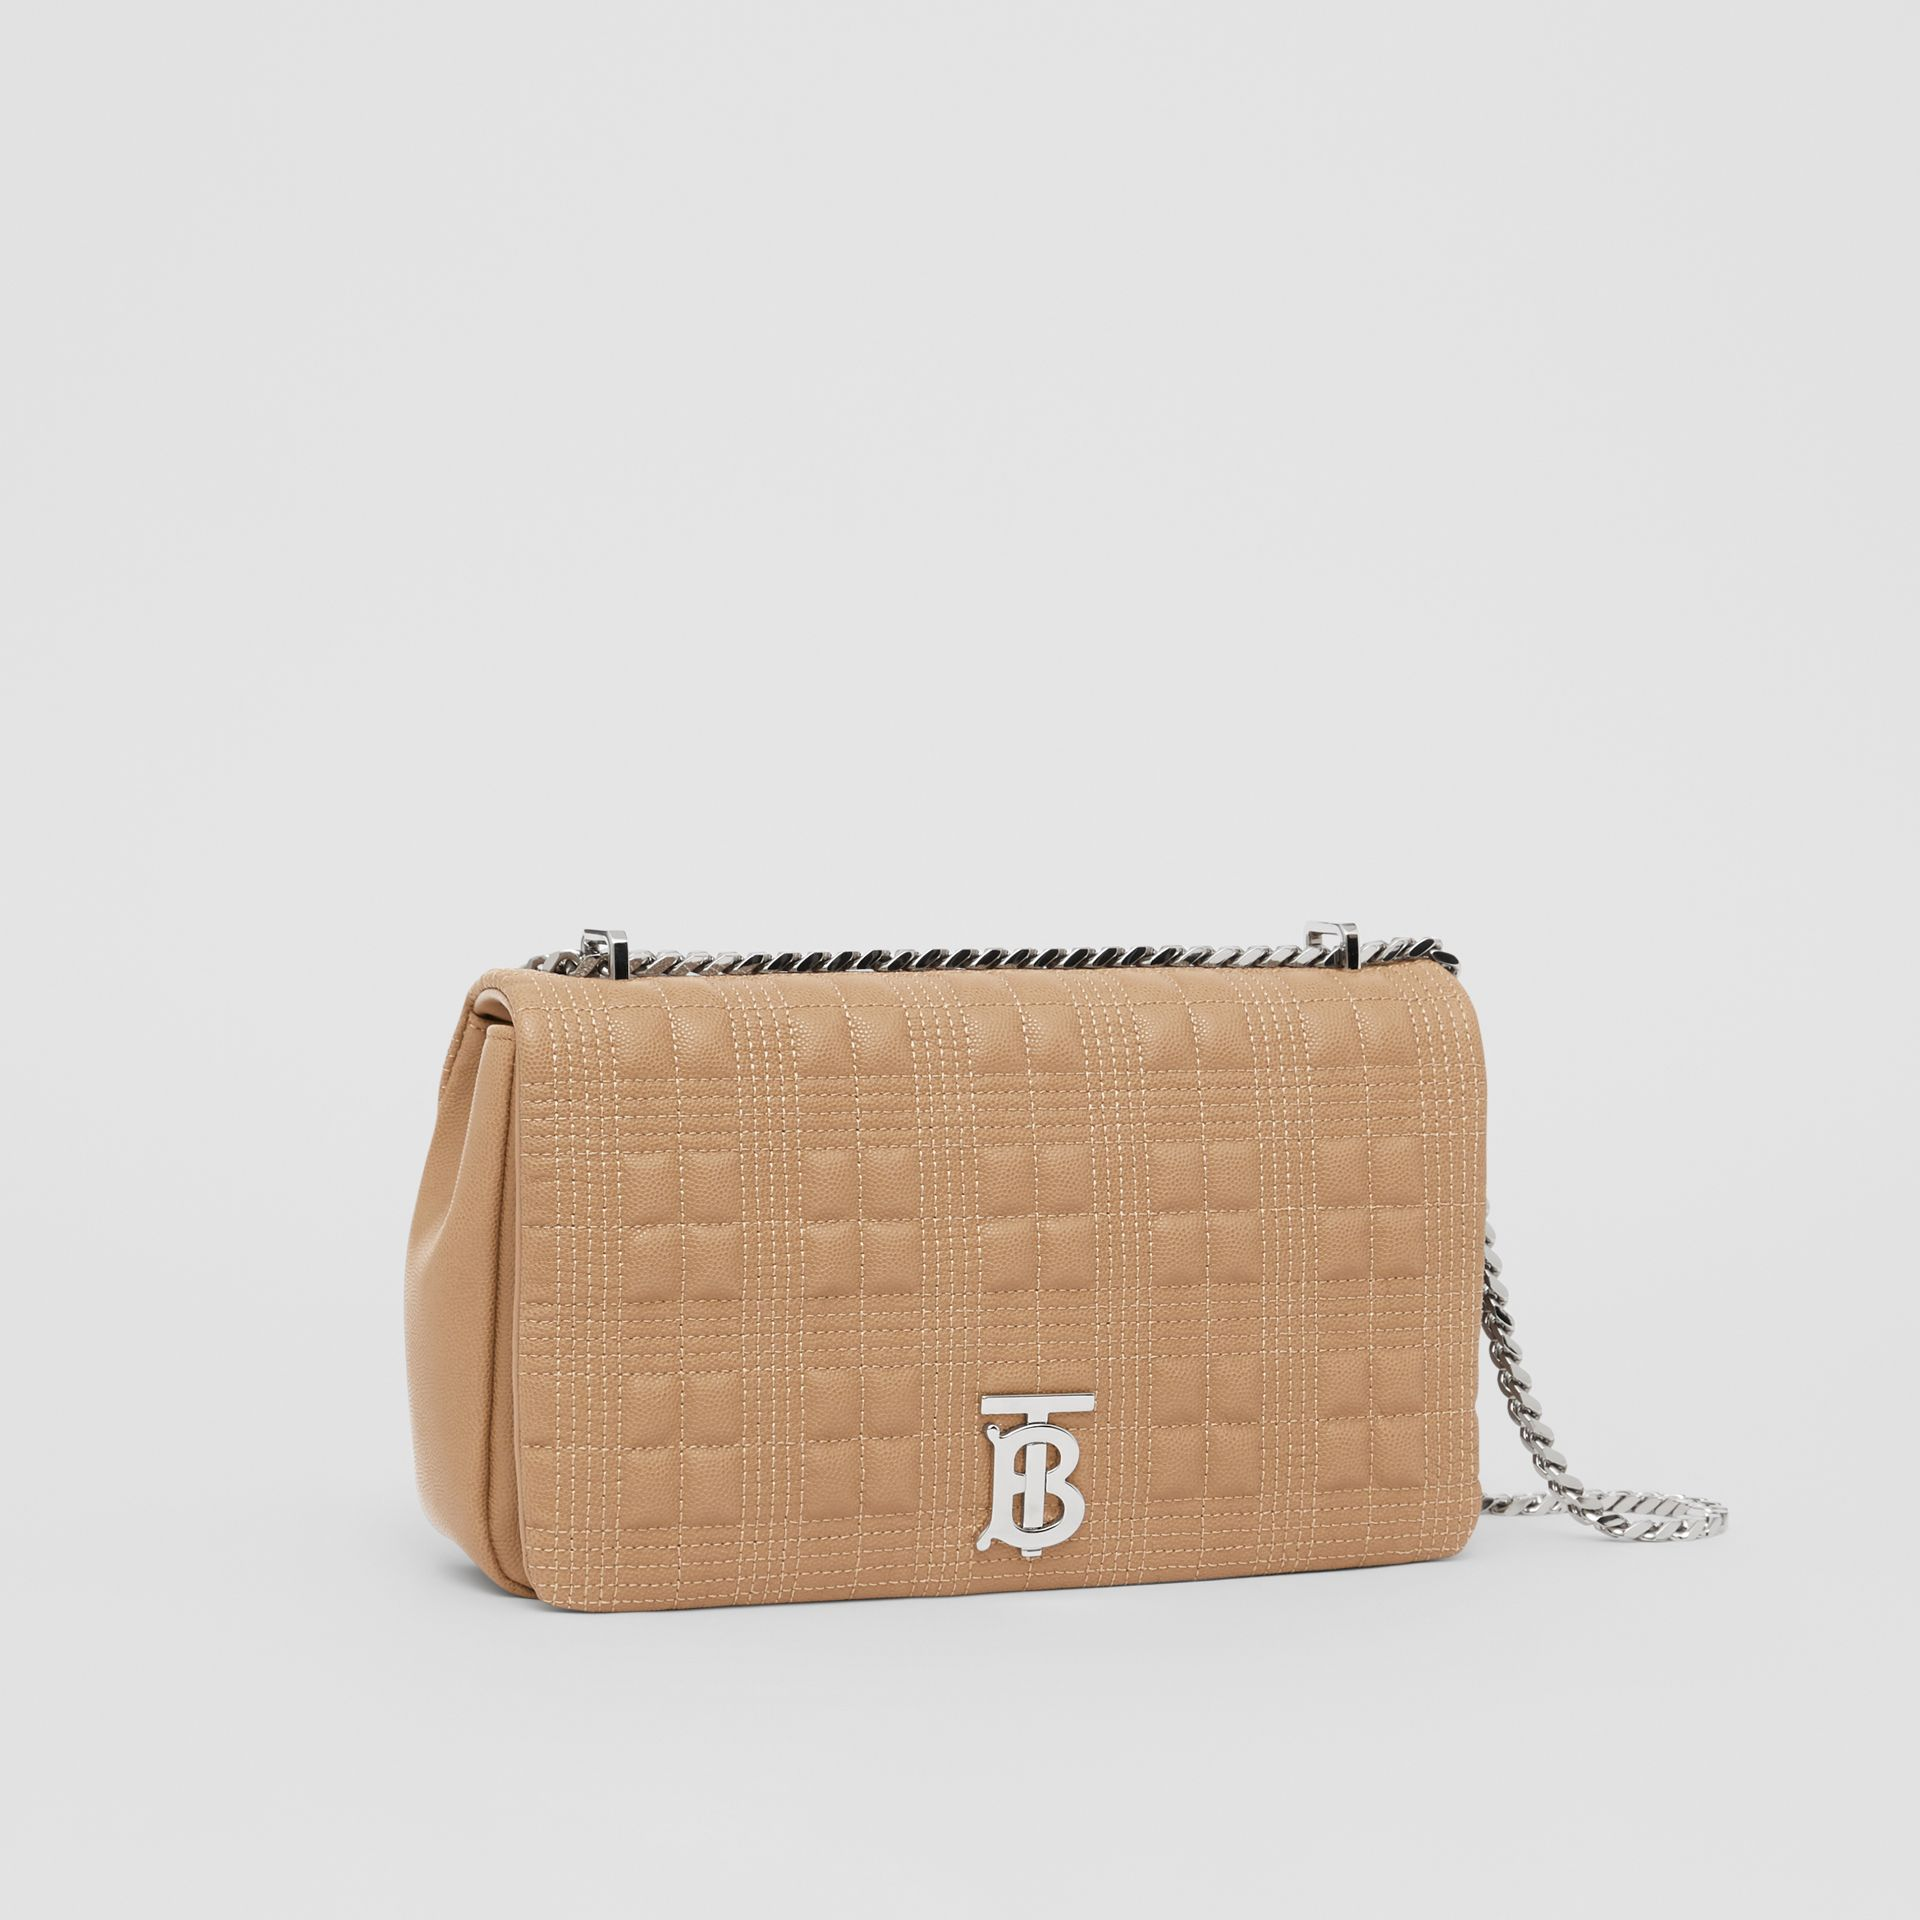 Medium Quilted Grainy Leather Lola Bag in Camel/palladium - Women | Burberry Hong Kong S.A.R. - gallery image 6